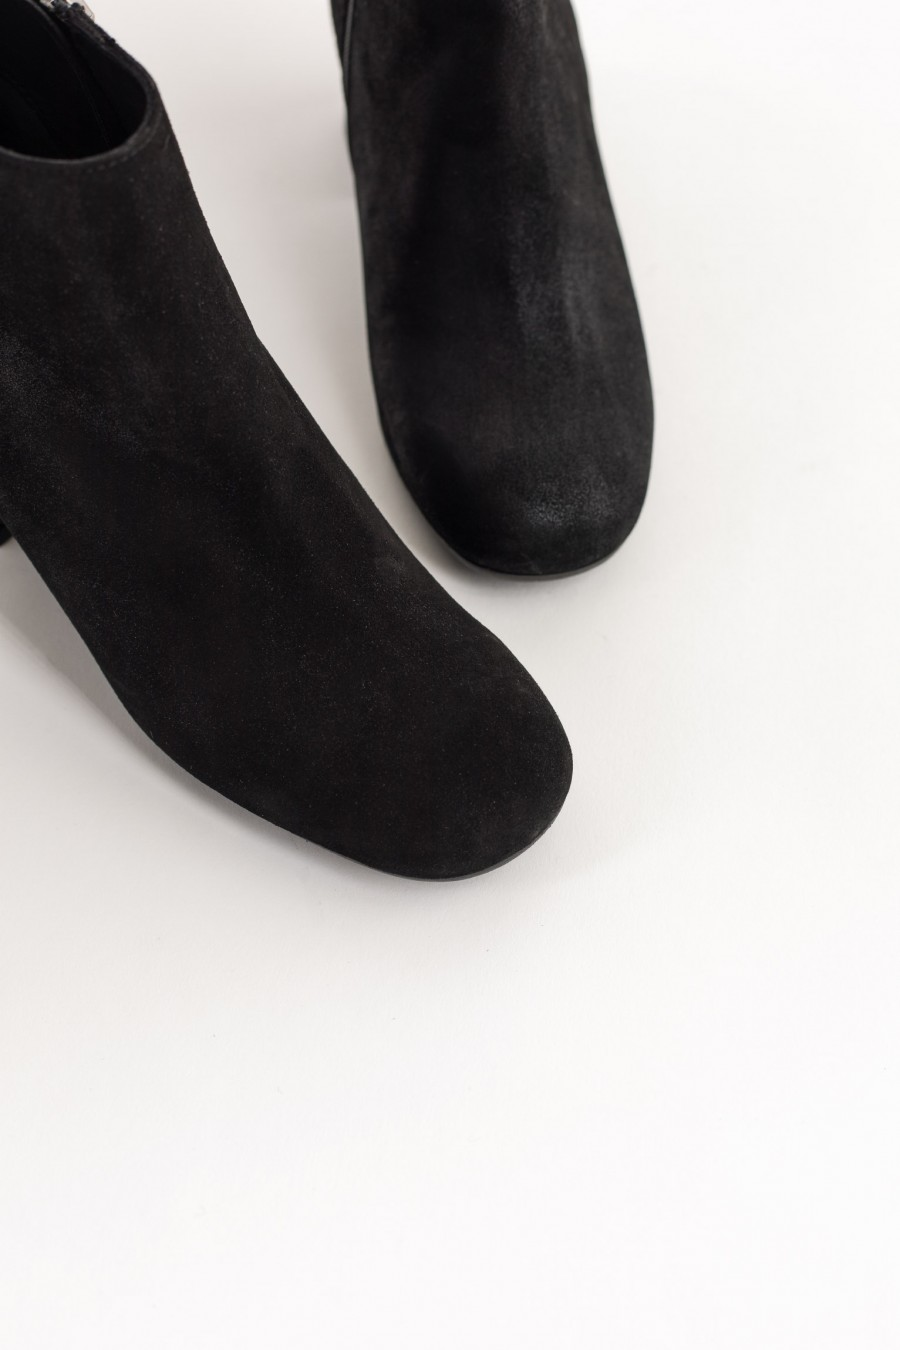 Black rounded toe ankle boots